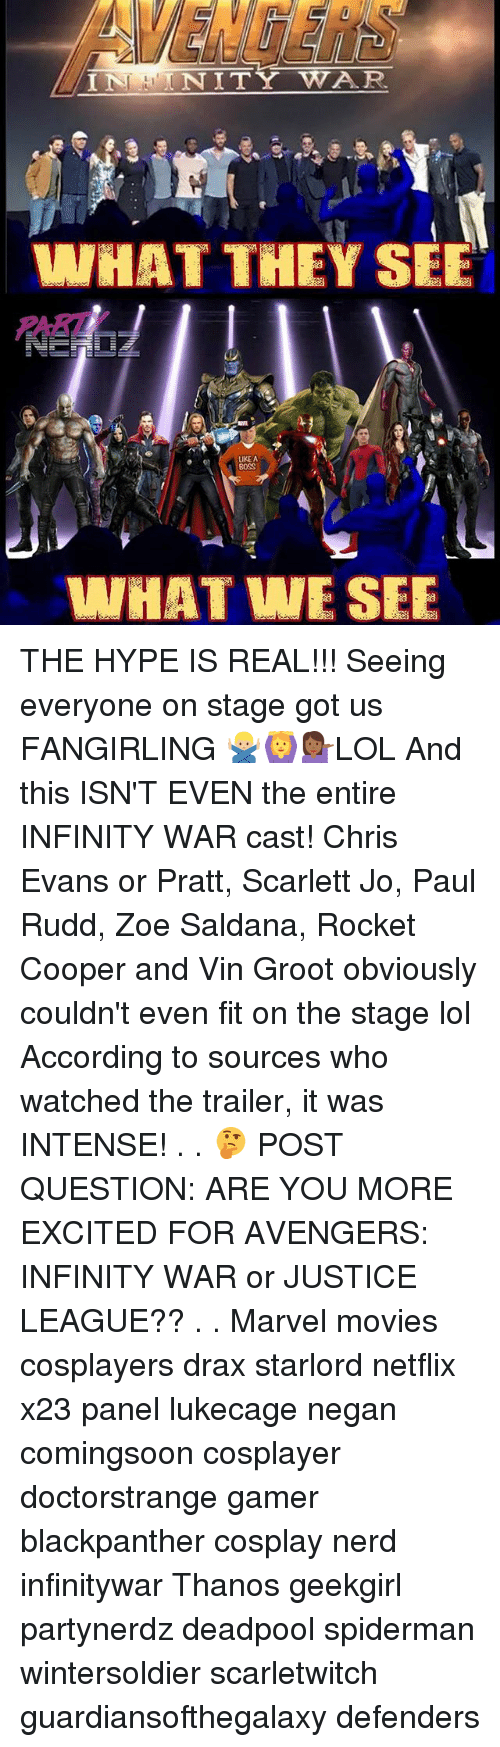 Evenement: AVENGER  PART  UKE A  0SS  WHATWE SEE THE HYPE IS REAL!!! Seeing everyone on stage got us FANGIRLING 🙅🏼‍♂️🙆💁🏾‍♀️LOL And this ISN'T EVEN the entire INFINITY WAR cast! Chris Evans or Pratt, Scarlett Jo, Paul Rudd, Zoe Saldana, Rocket Cooper and Vin Groot obviously couldn't even fit on the stage lol According to sources who watched the trailer, it was INTENSE! . . 🤔 POST QUESTION: ARE YOU MORE EXCITED FOR AVENGERS: INFINITY WAR or JUSTICE LEAGUE?? . . Marvel movies cosplayers drax starlord netflix x23 panel lukecage negan comingsoon cosplayer doctorstrange gamer blackpanther cosplay nerd infinitywar Thanos geekgirl partynerdz deadpool spiderman wintersoldier scarletwitch guardiansofthegalaxy defenders